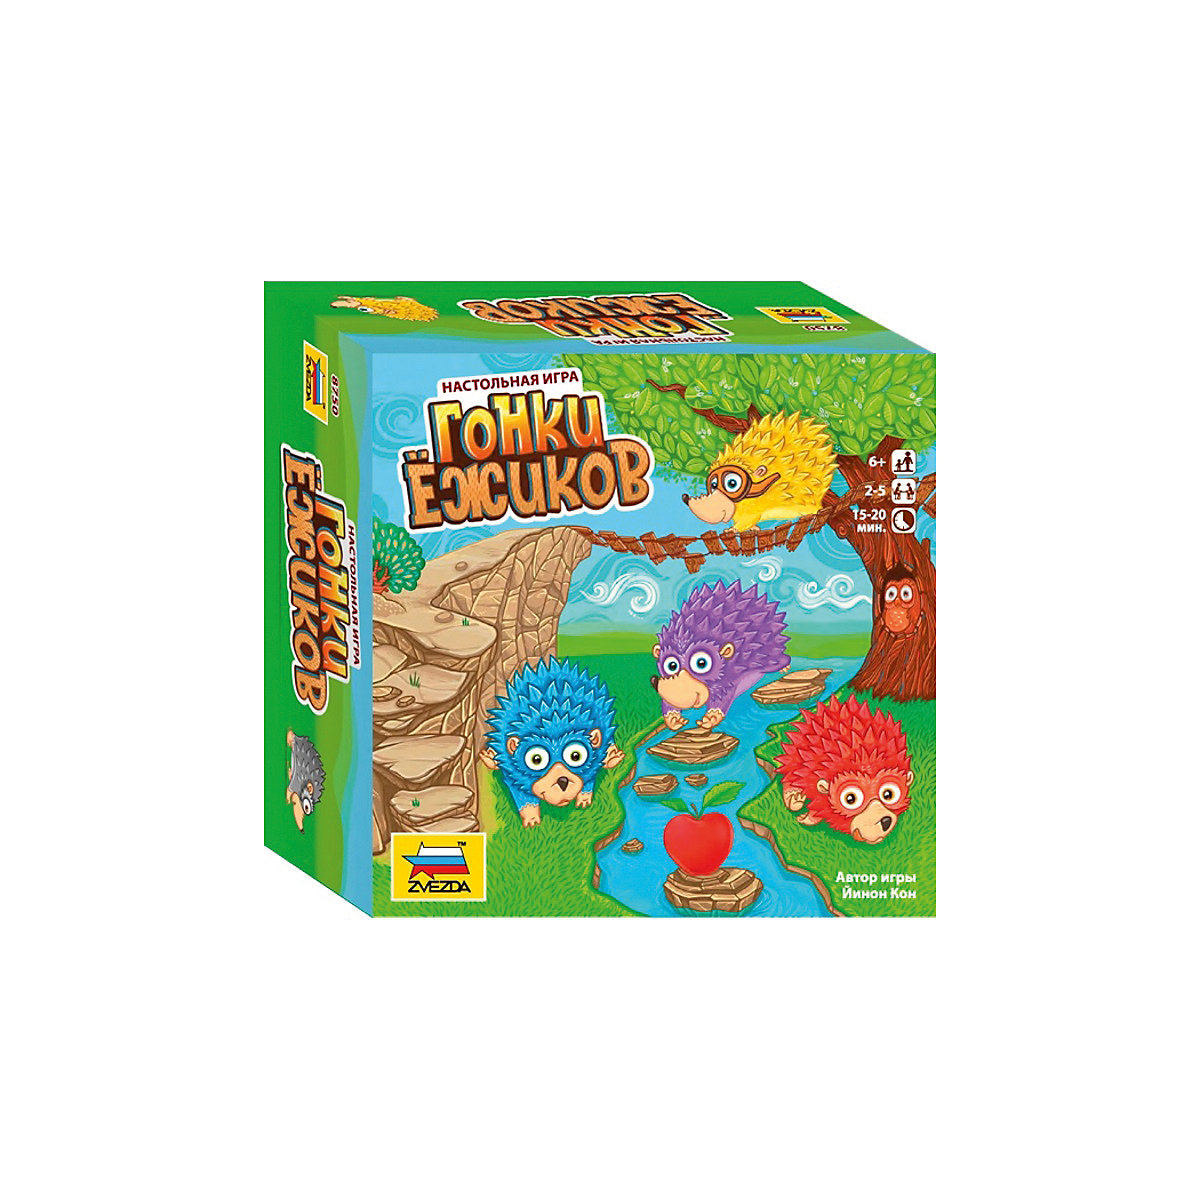 Zvezda Party Games 8988630 board game fine motor skills for the company developing play girl boy friends hasbro gaming party games 8376303 board game fine motor skills for the company developing play girl boy friends